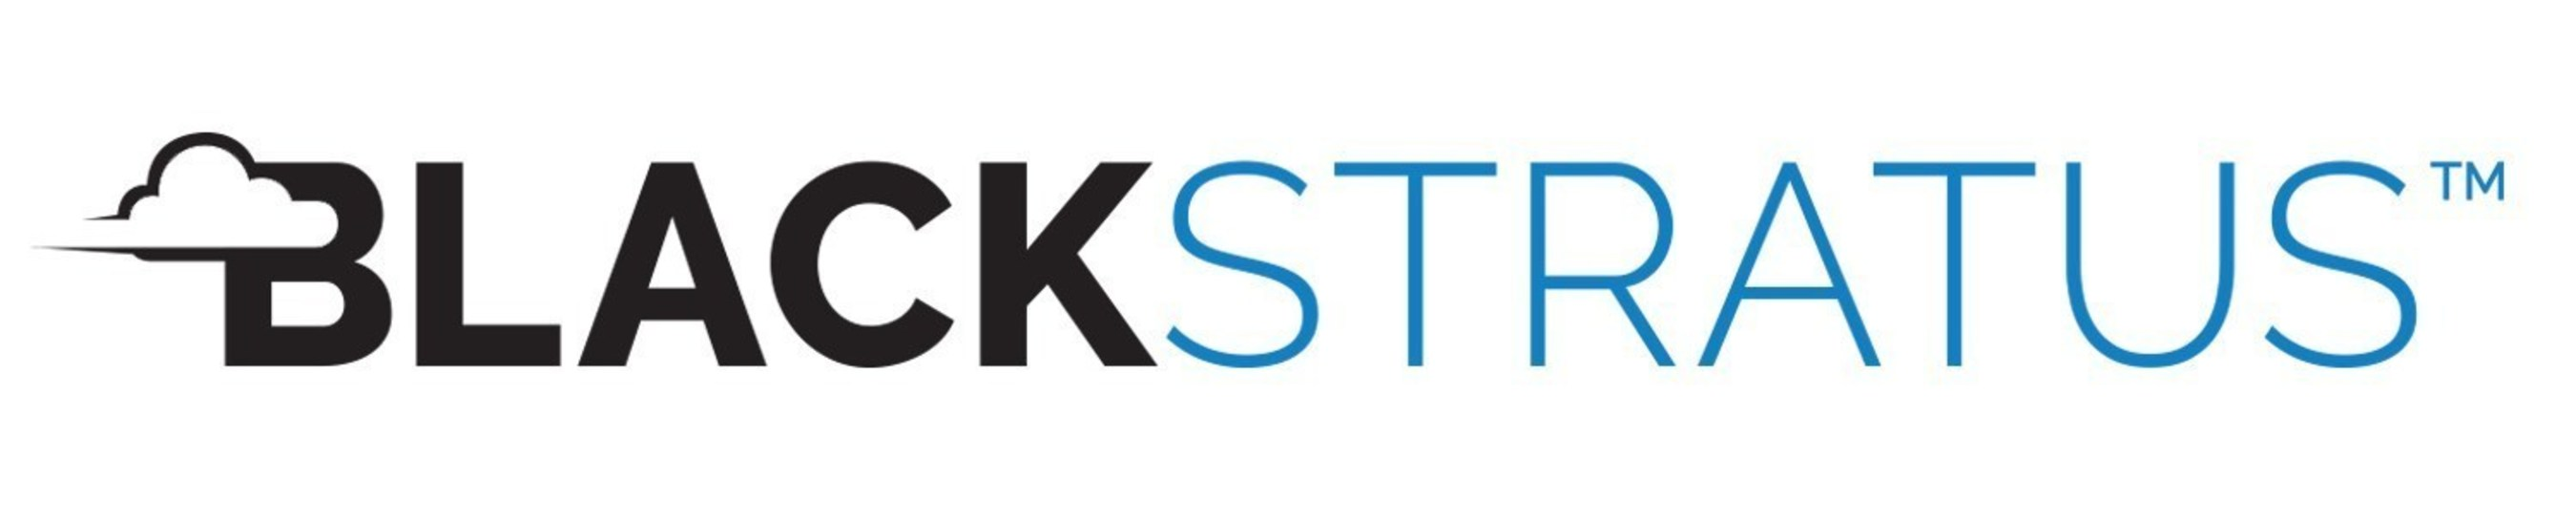 BlackStratus to Present New CYBERShark SIEM-as-a-Service During 9th Annual Autotask Community Live! Event